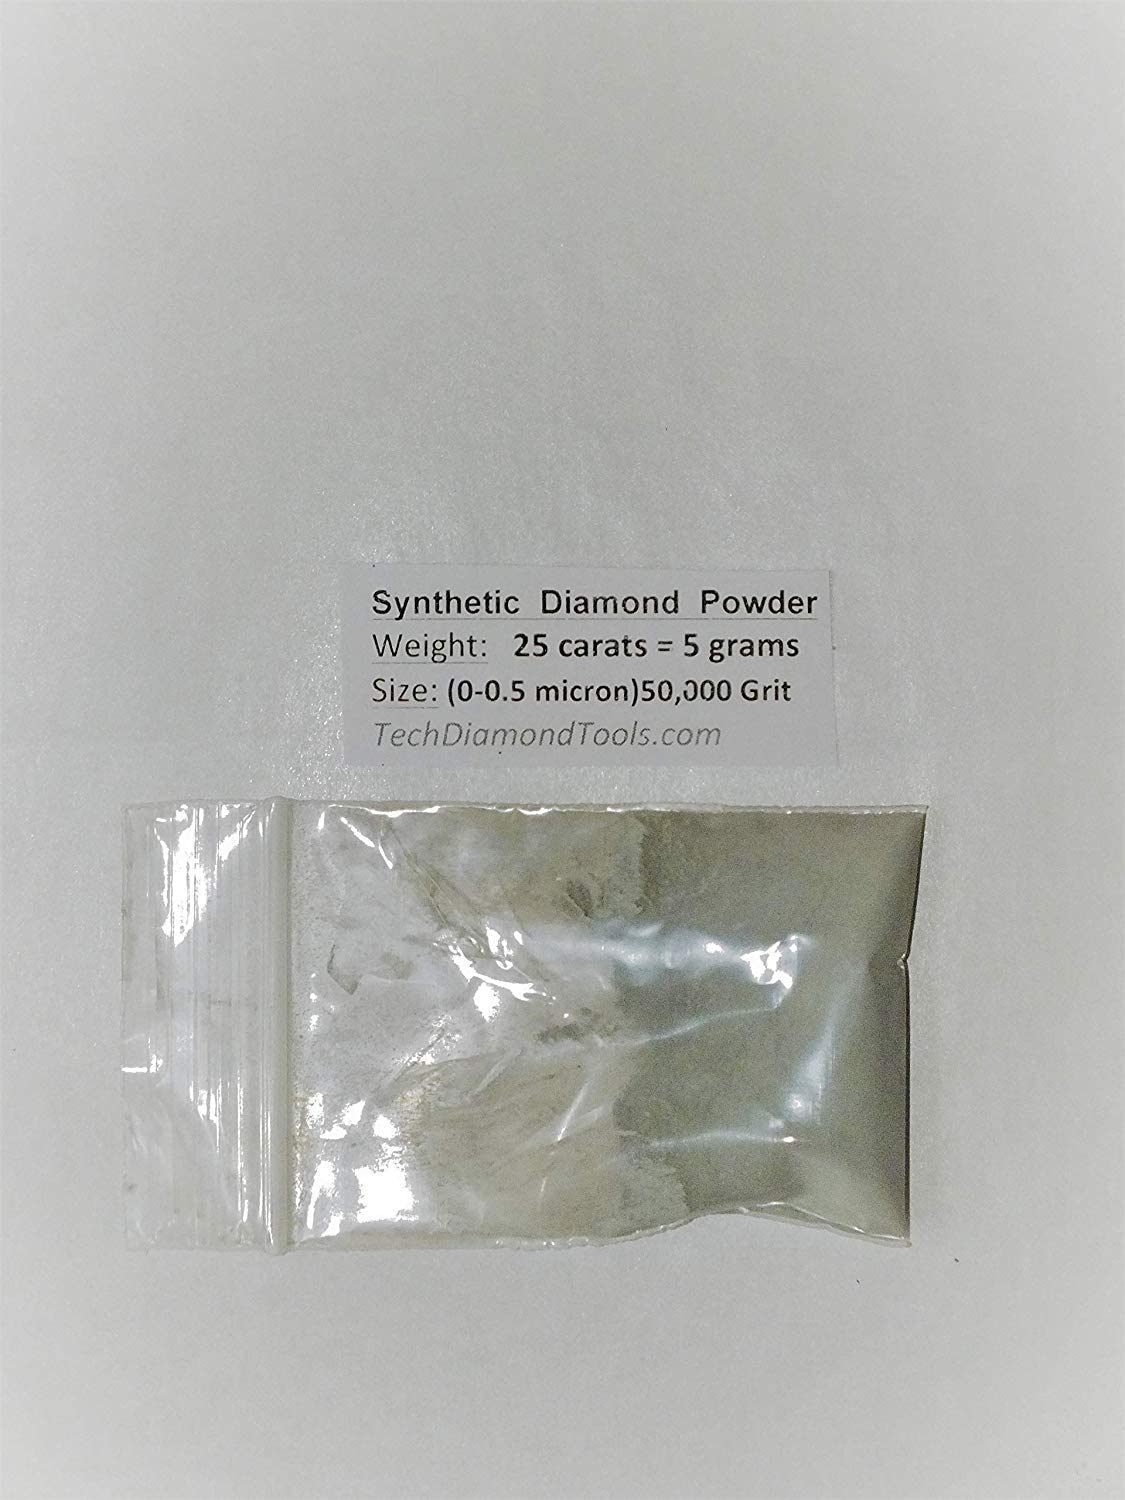 Diamond Powder Polishing size from 20000 to 320 Grit Mesh 50Cts.10g @